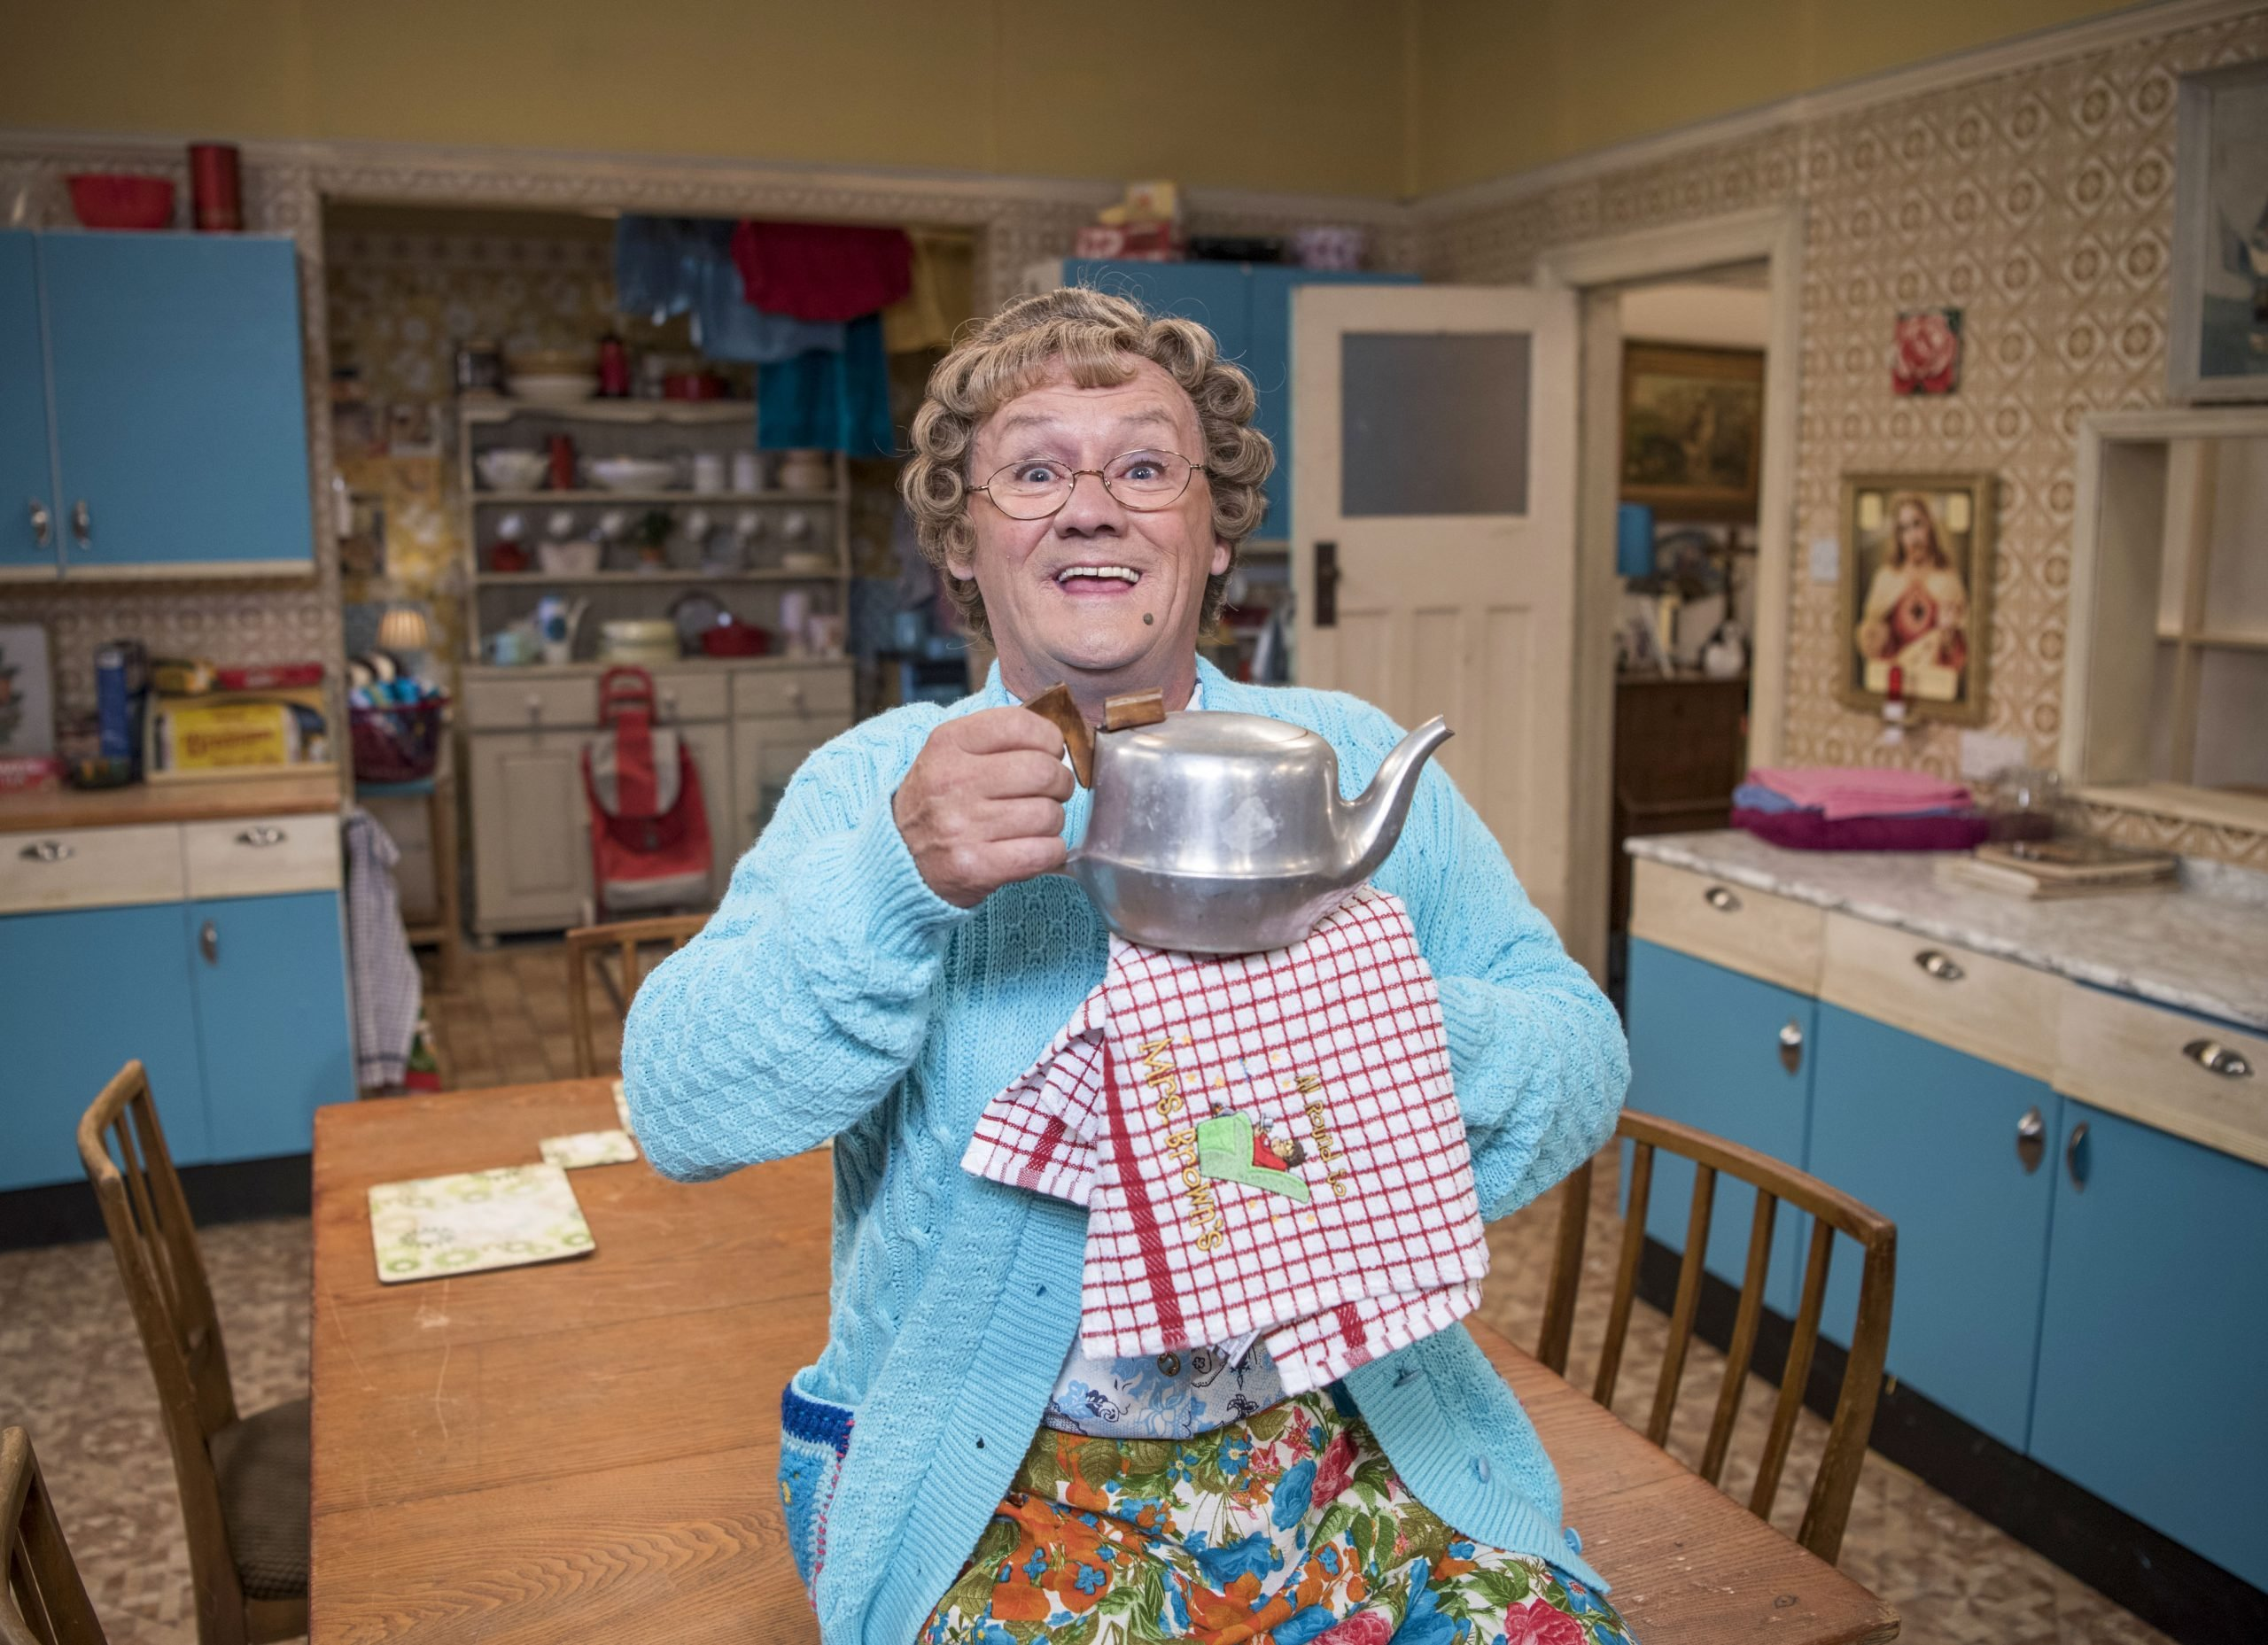 Mrs Brown's Boys repeats are better than Peter Crouch show, say viewers